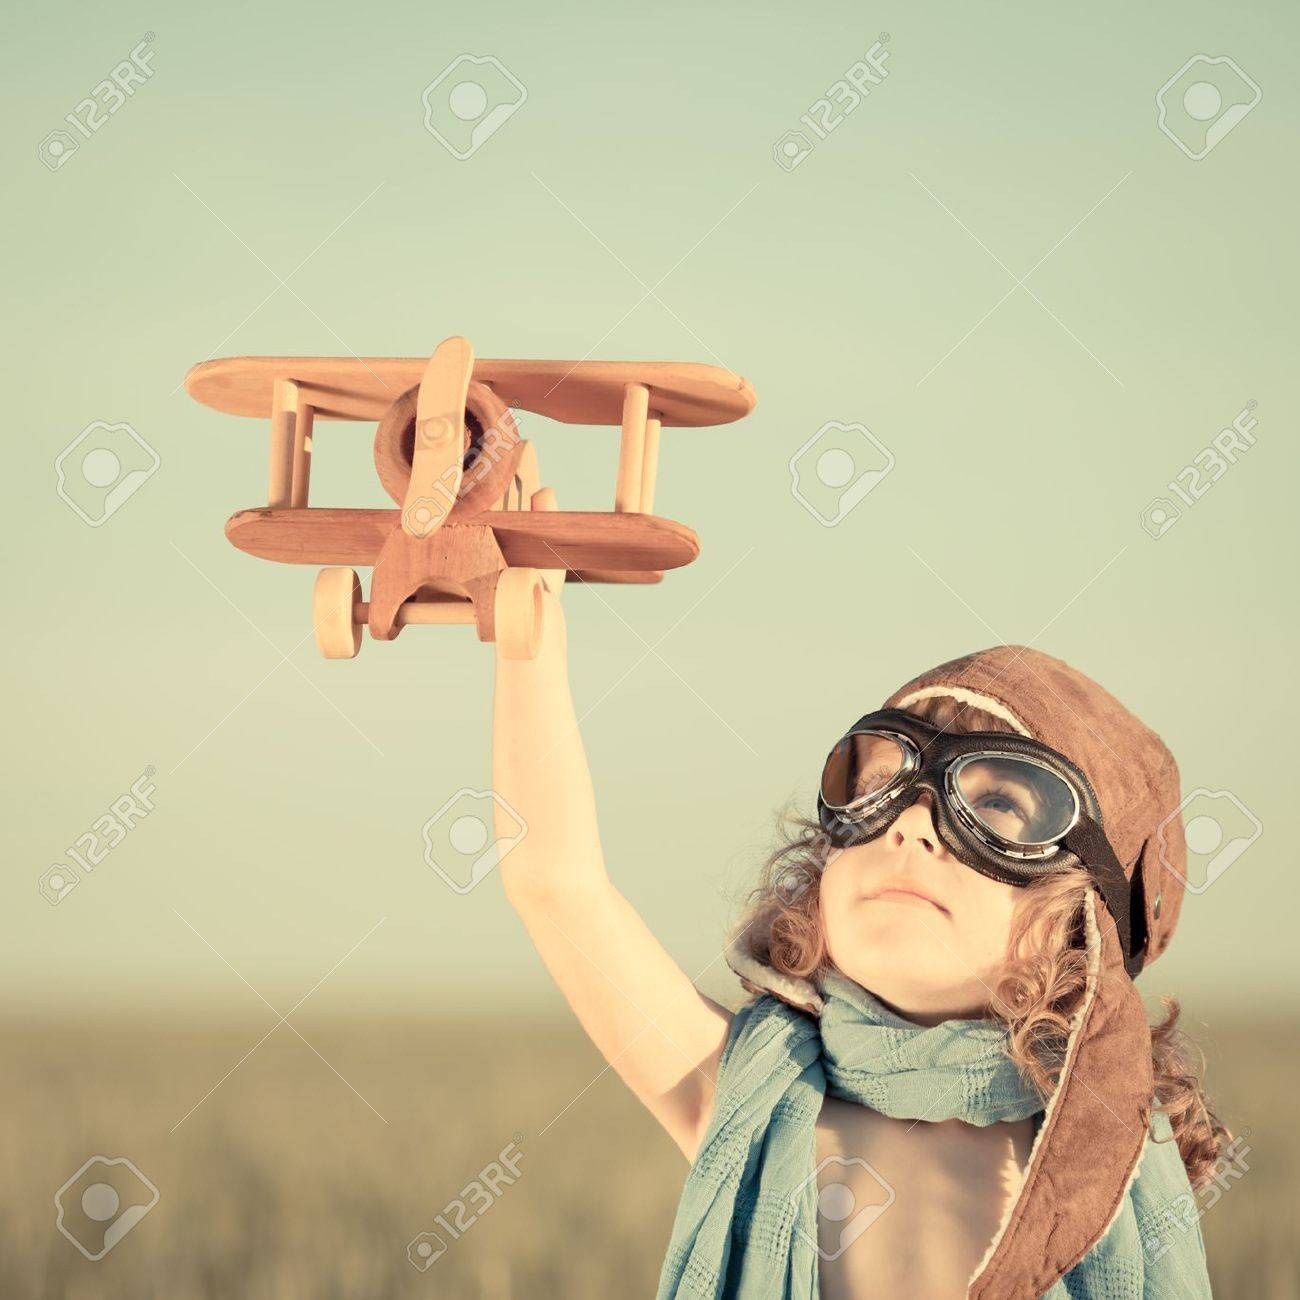 Happy kid playing with toy airplane against blue summer sky background Stock Photo - 19761824